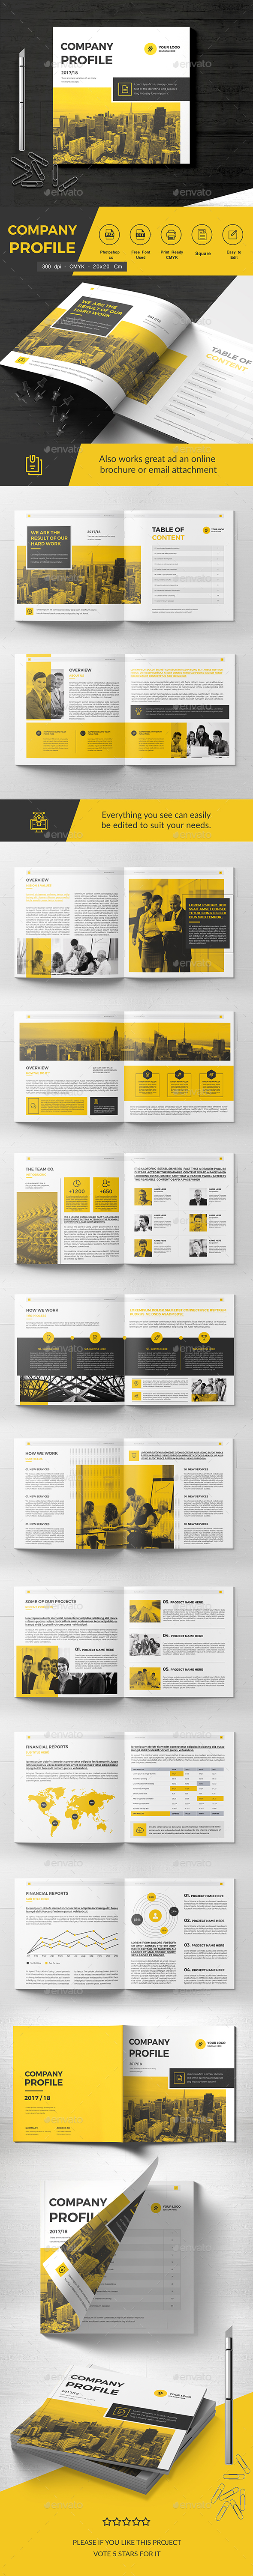 Square Company Brochure 22 Pages - Corporate Brochures